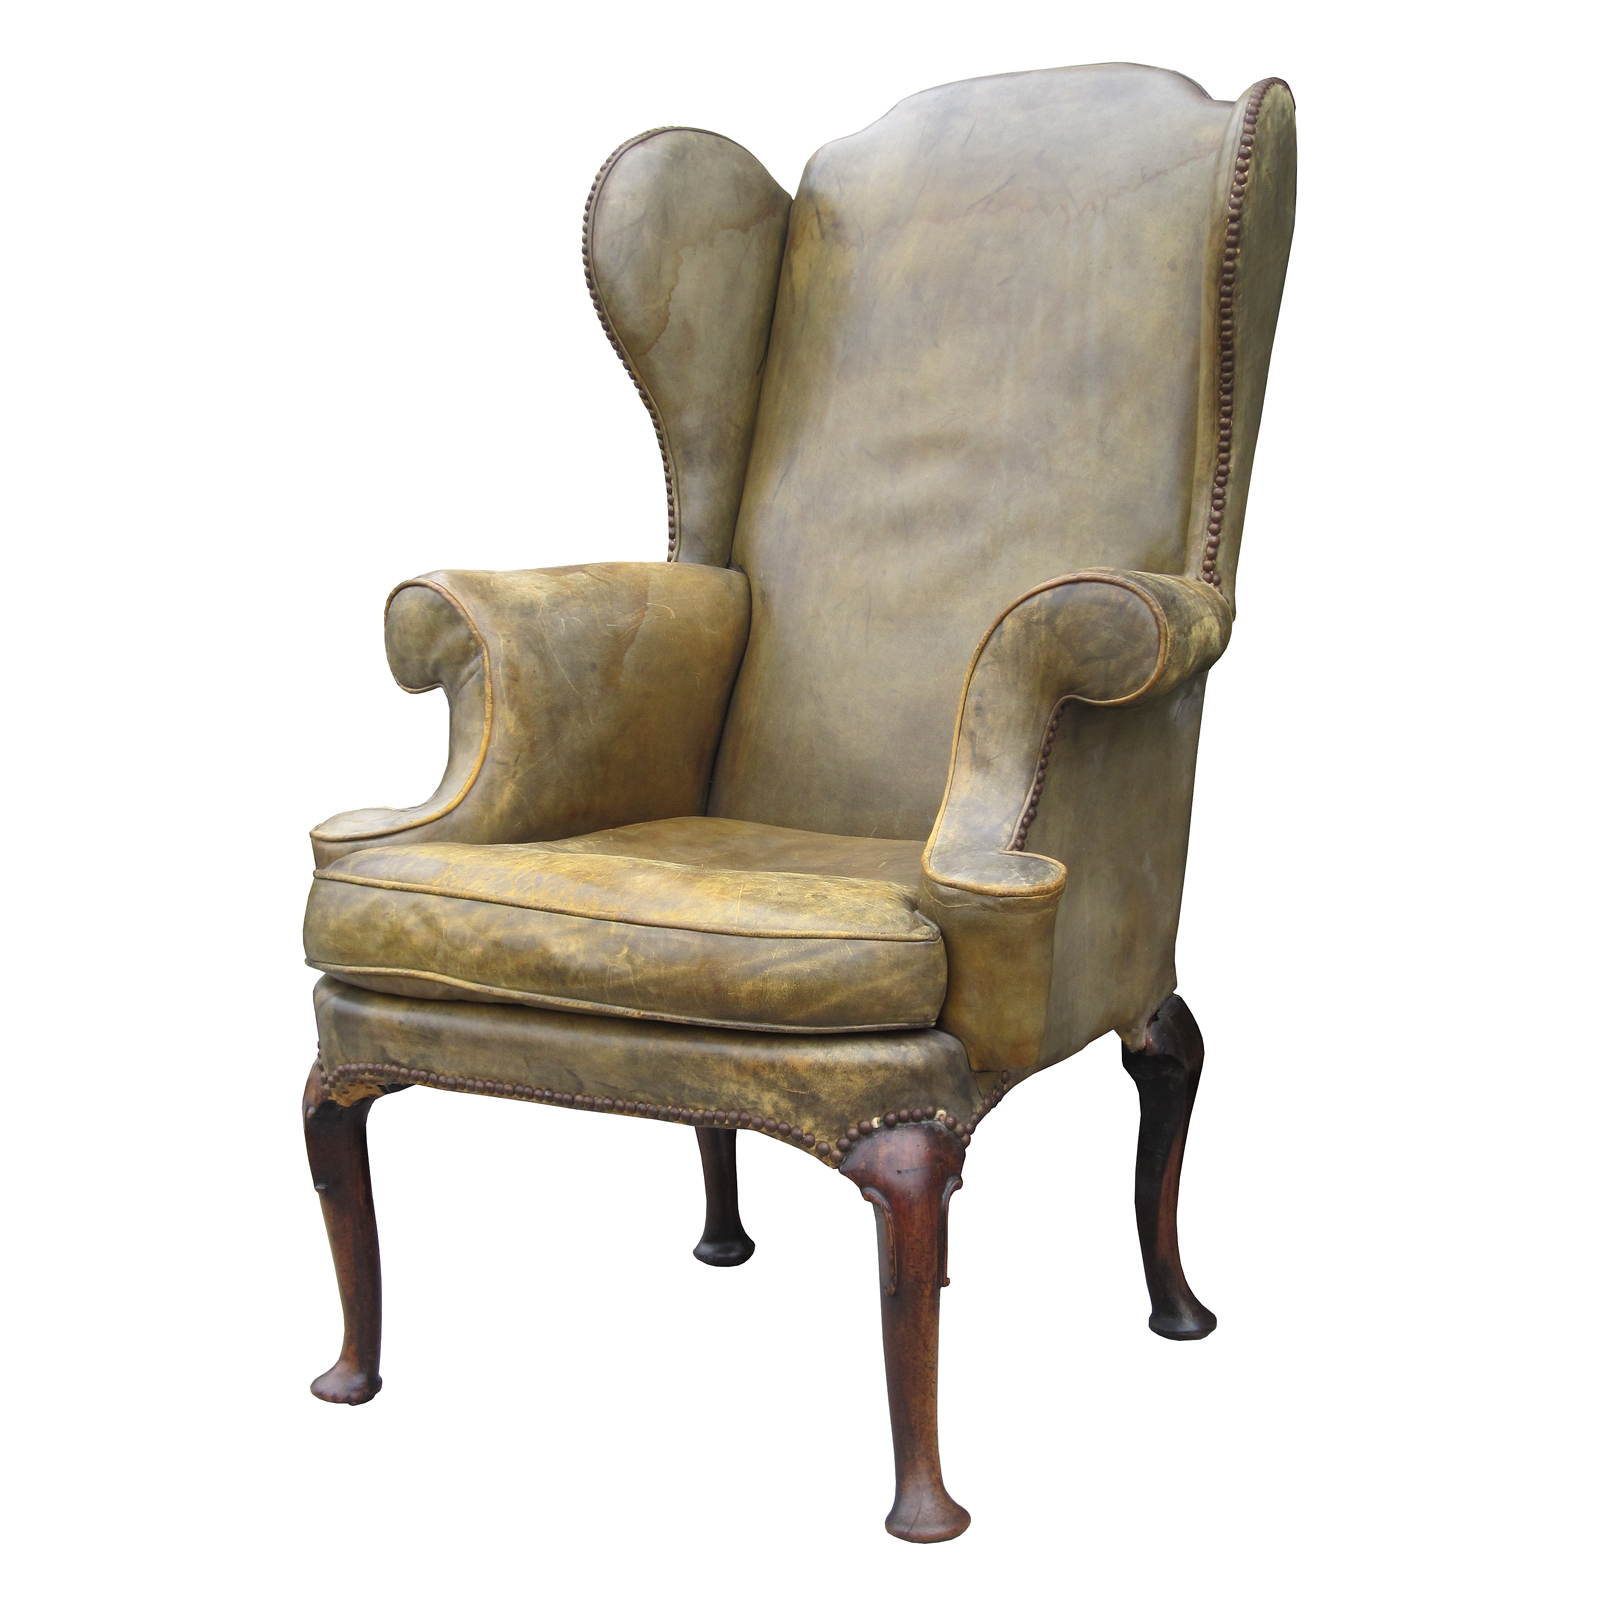 Wing Chair Furniture Lahore the peak of chic®: let's wing it